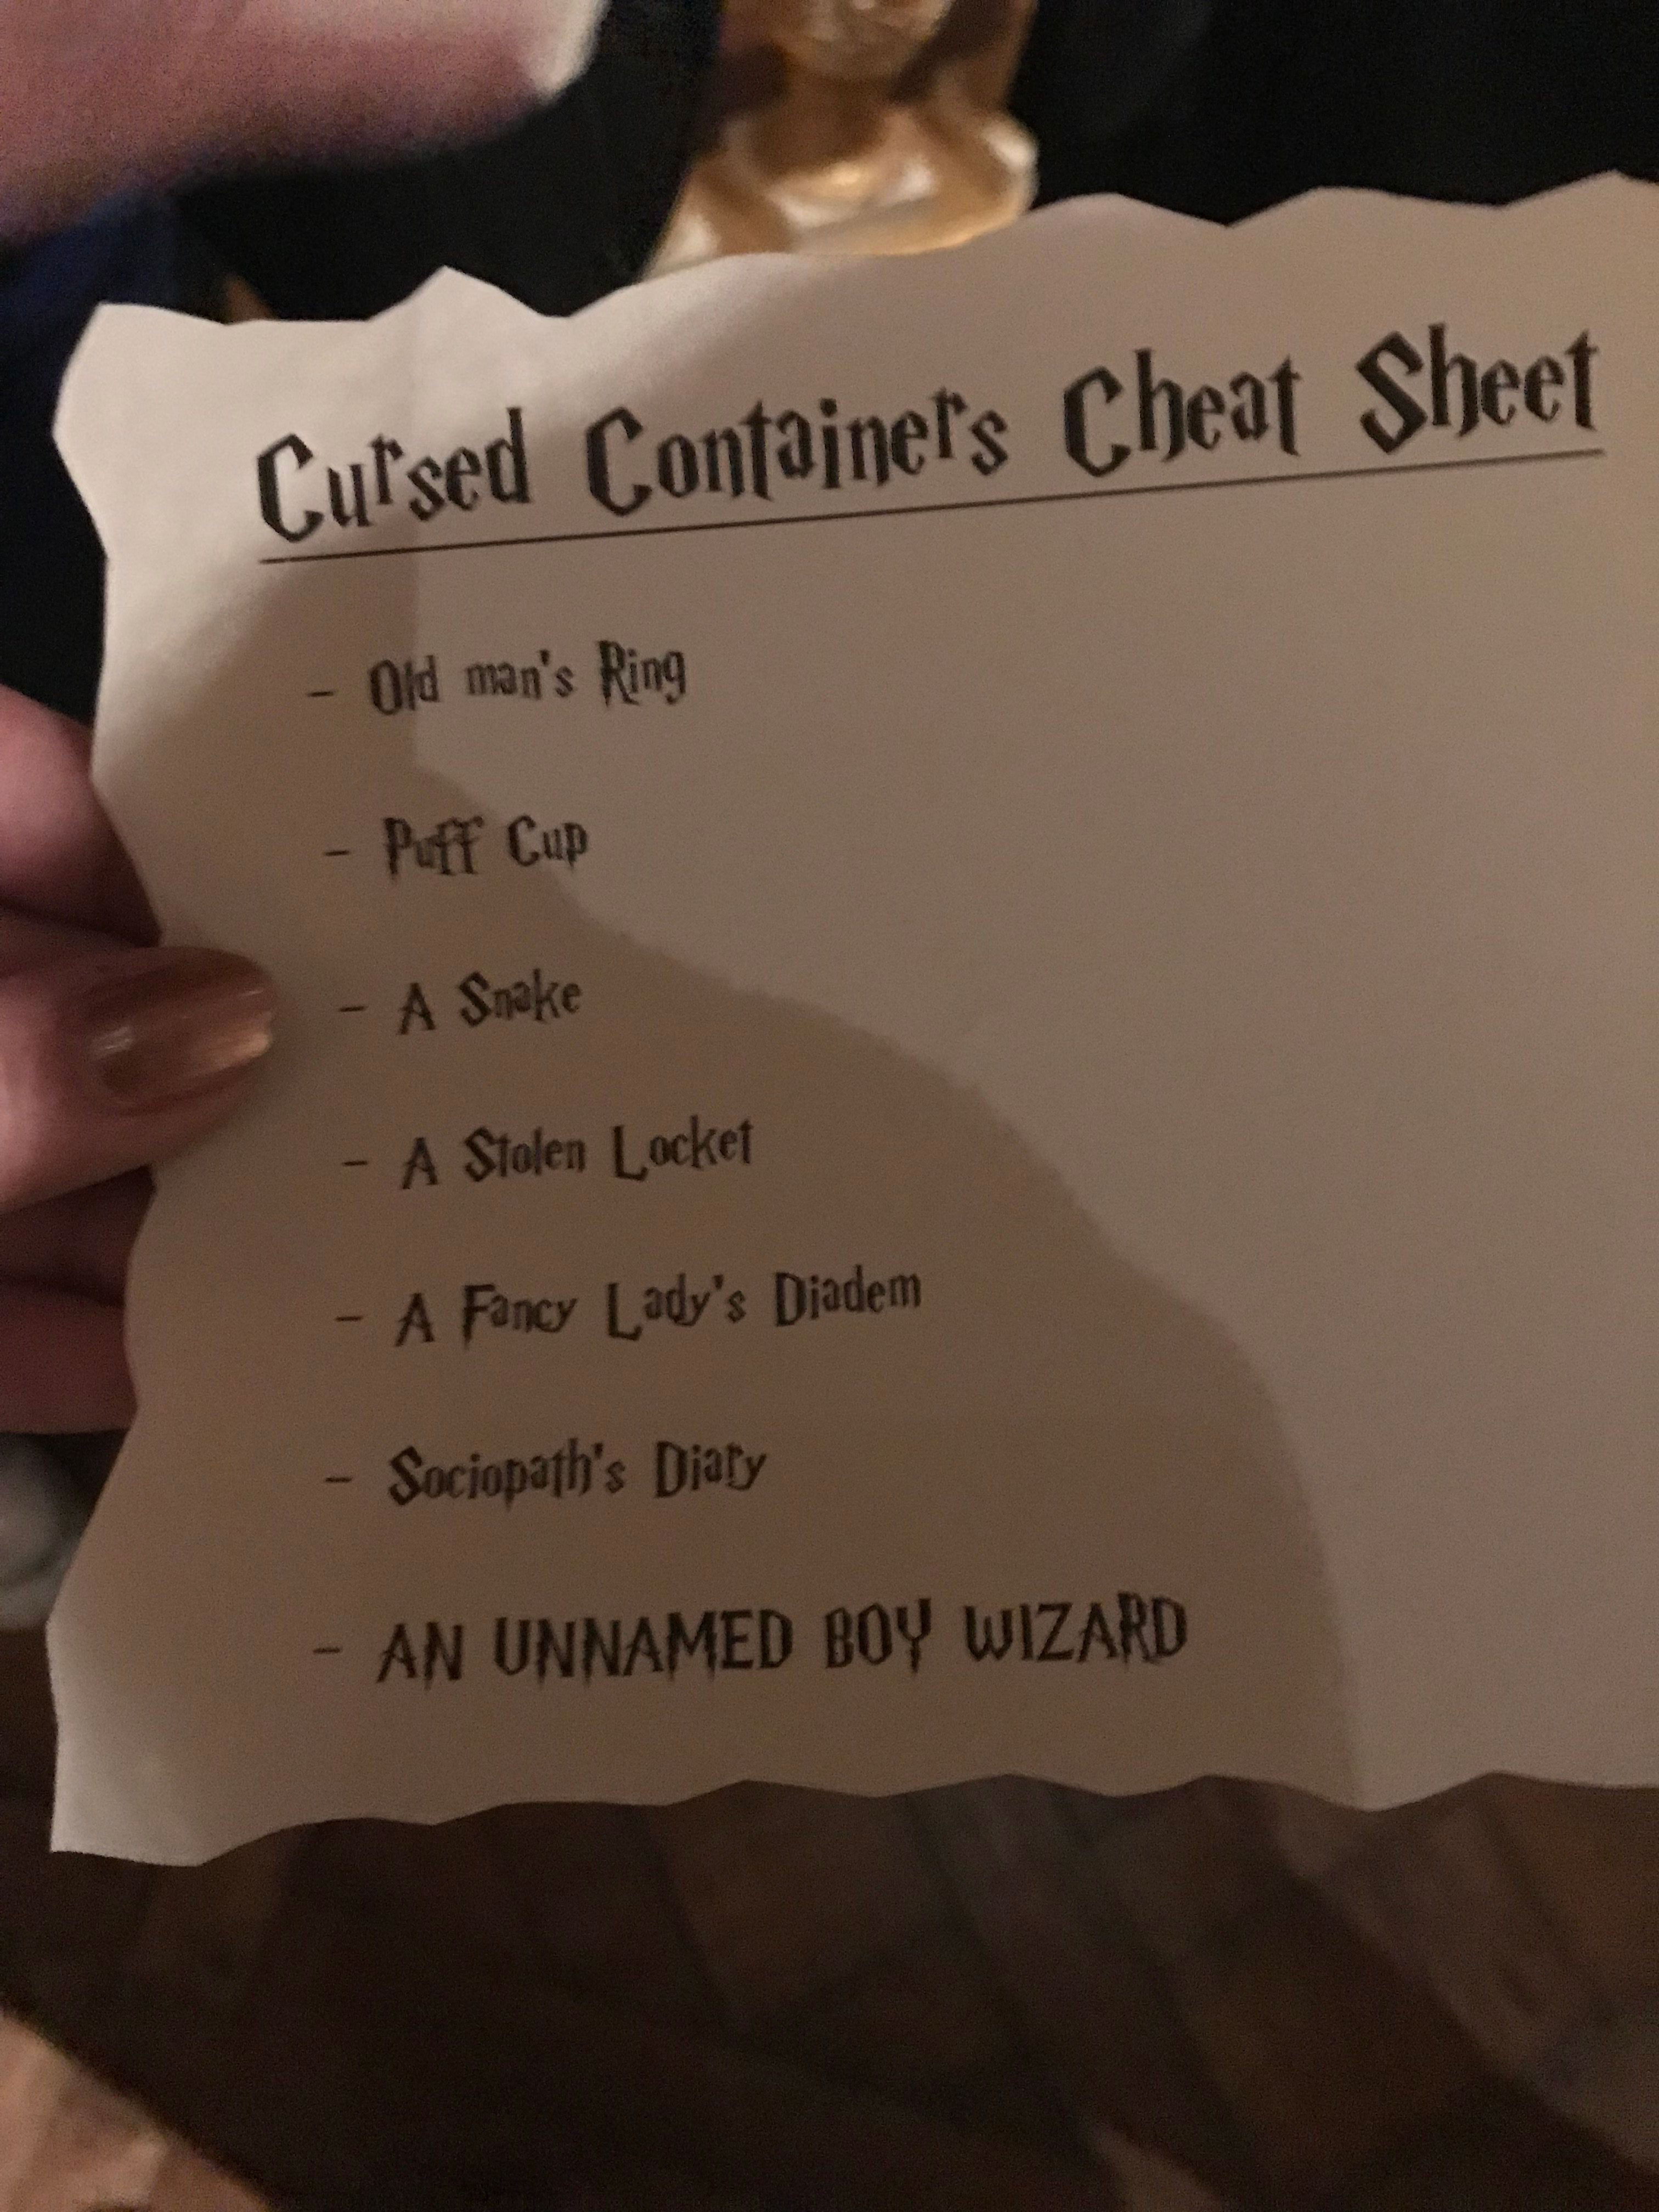 Cursed Containers Cheat Sheet